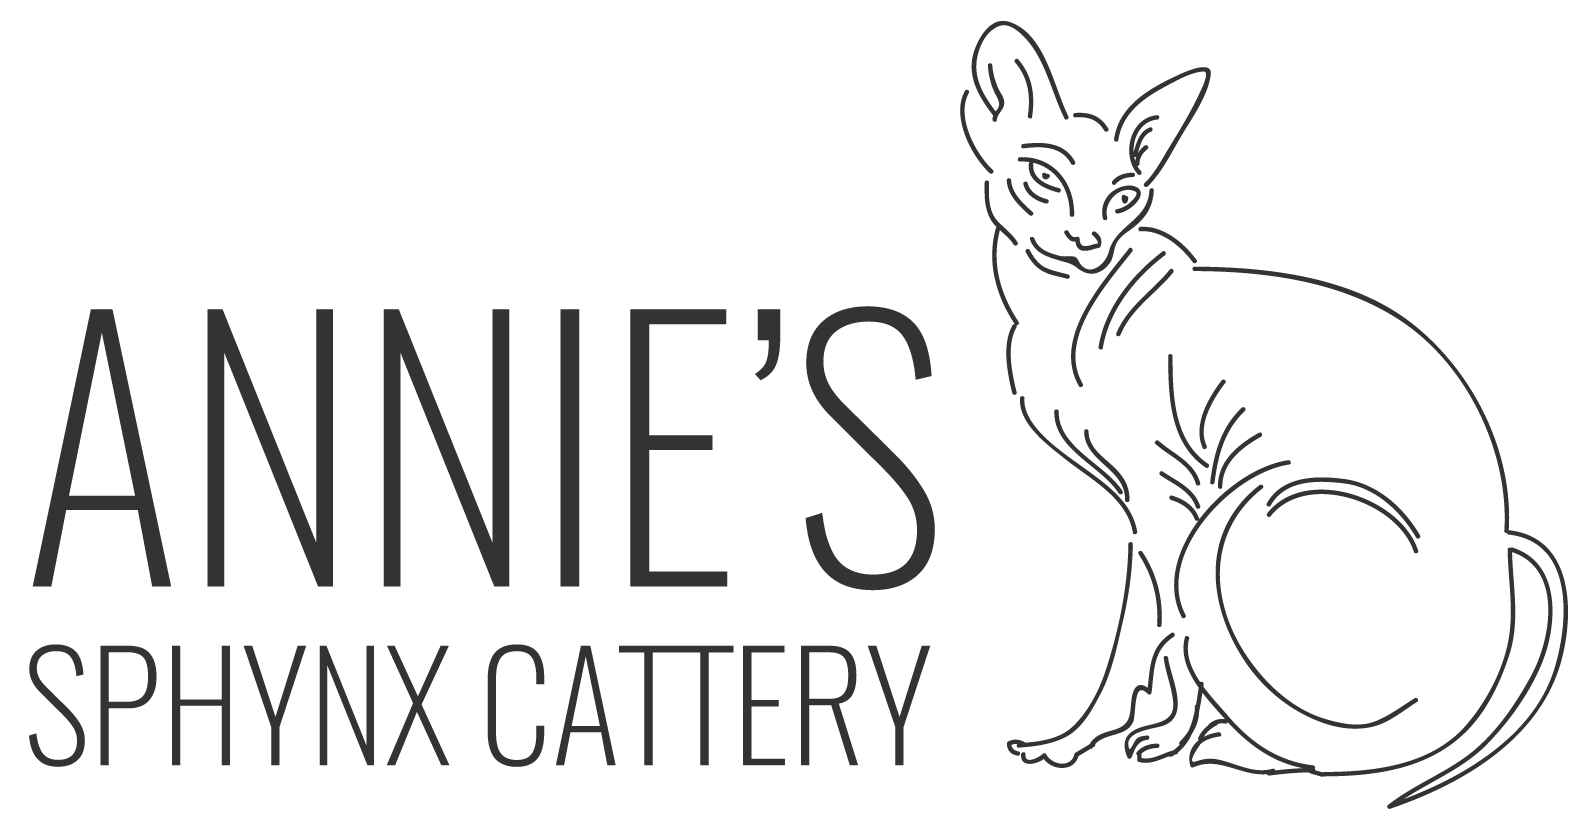 Annie's-Sphynx-Cattery-logo